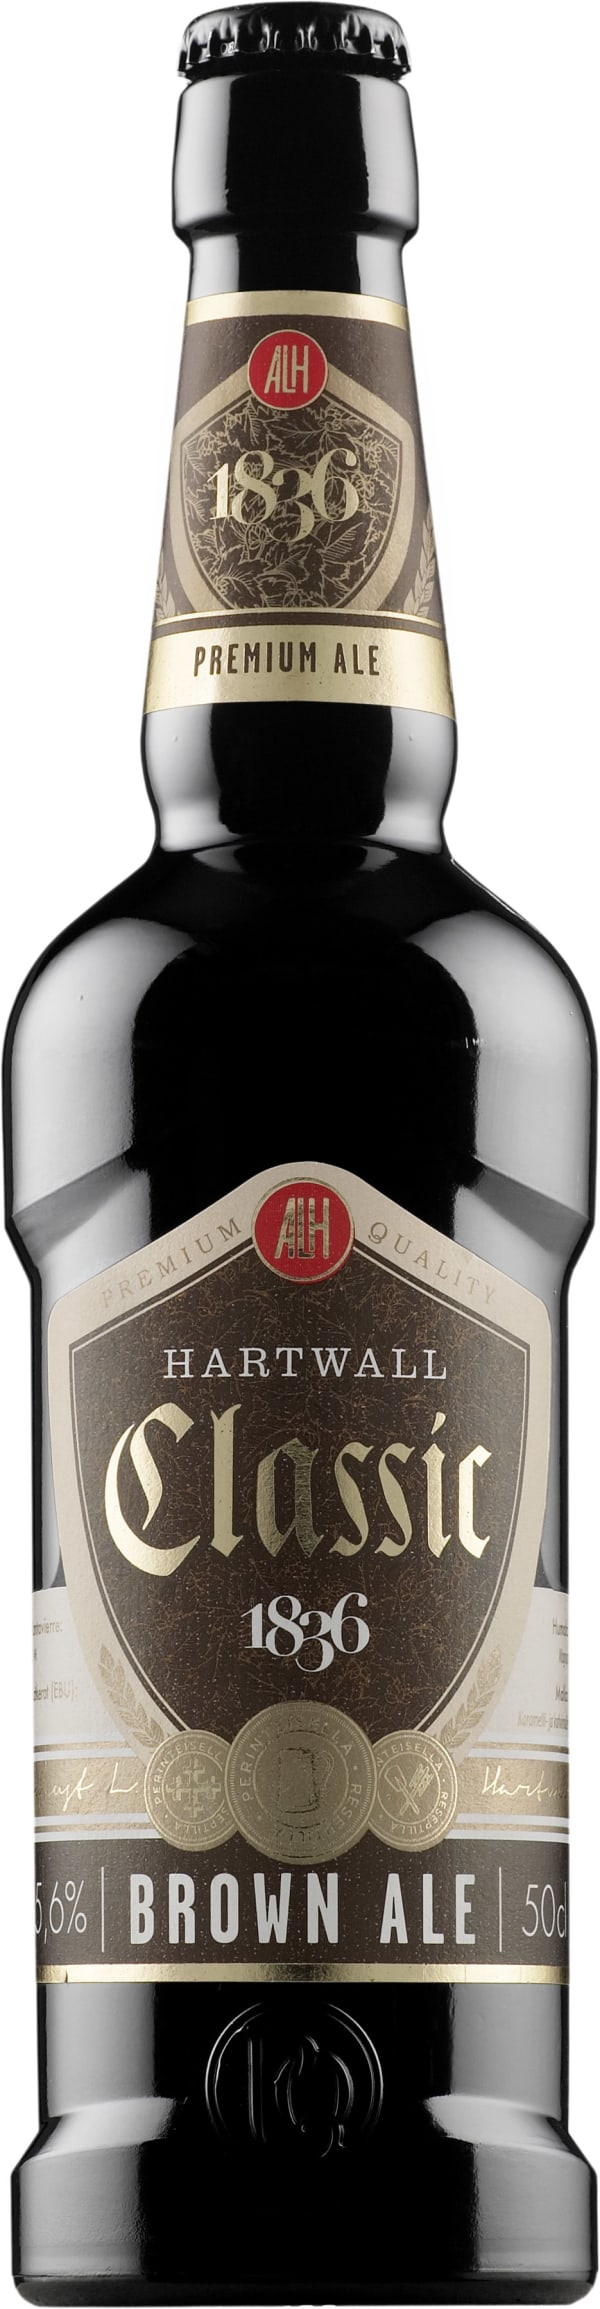 Hartwall Classic 1836 Brown Ale